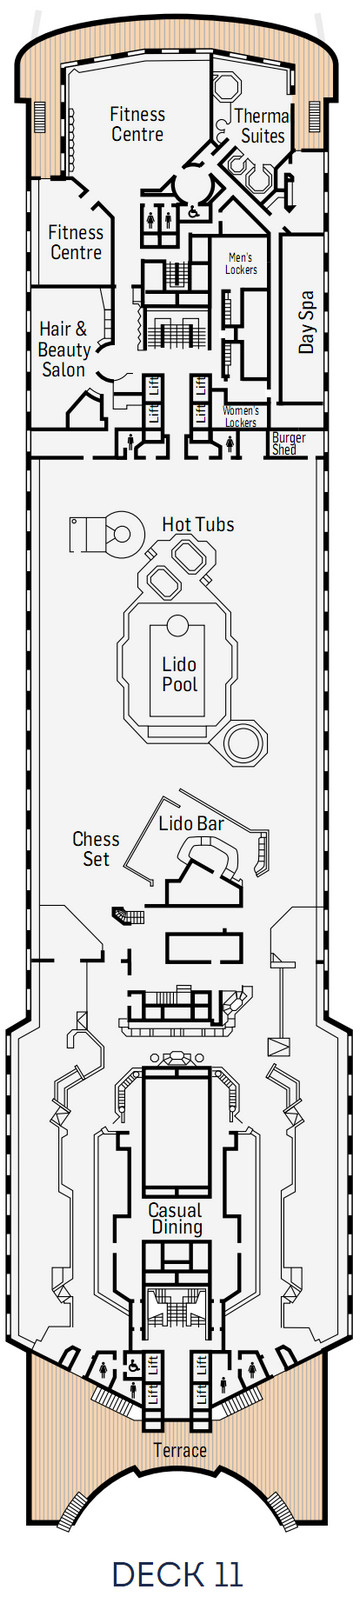 P&O - Pacific Eden Deck 11 layout